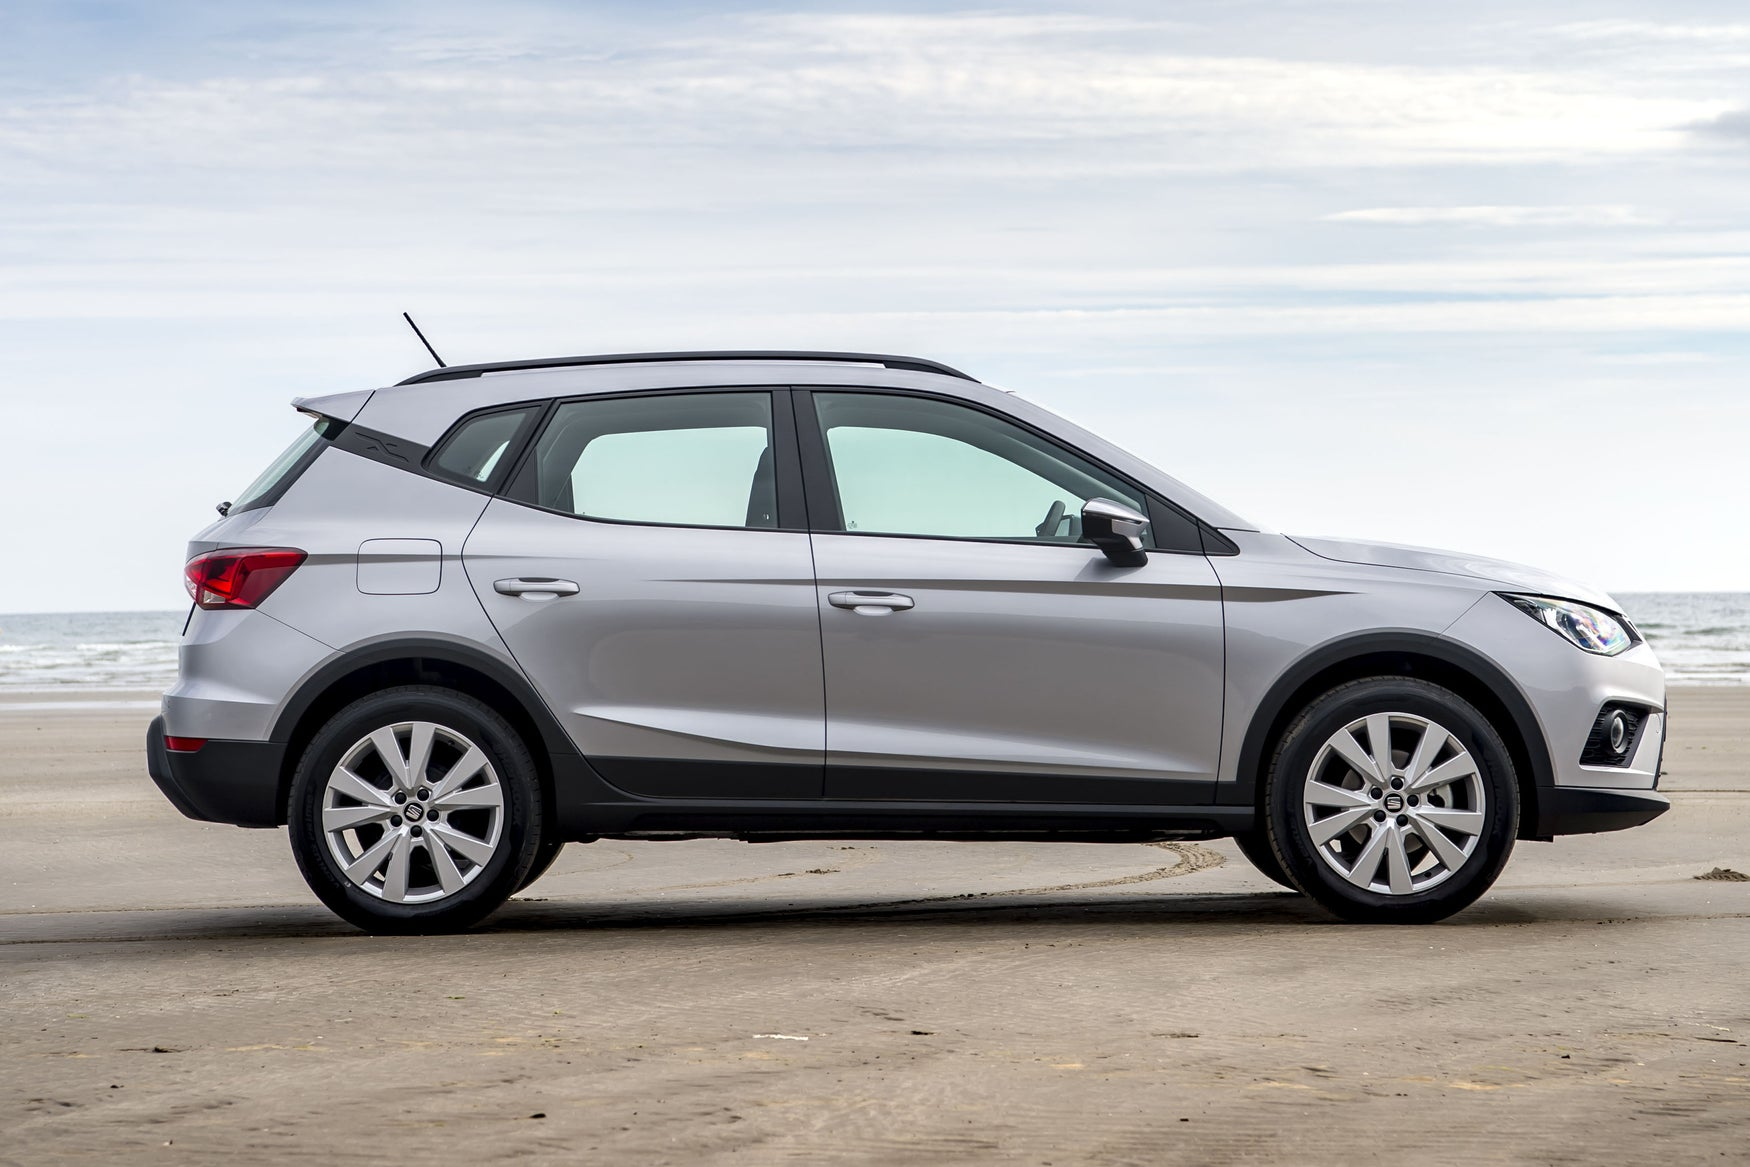 SEAT Arona Right Side View